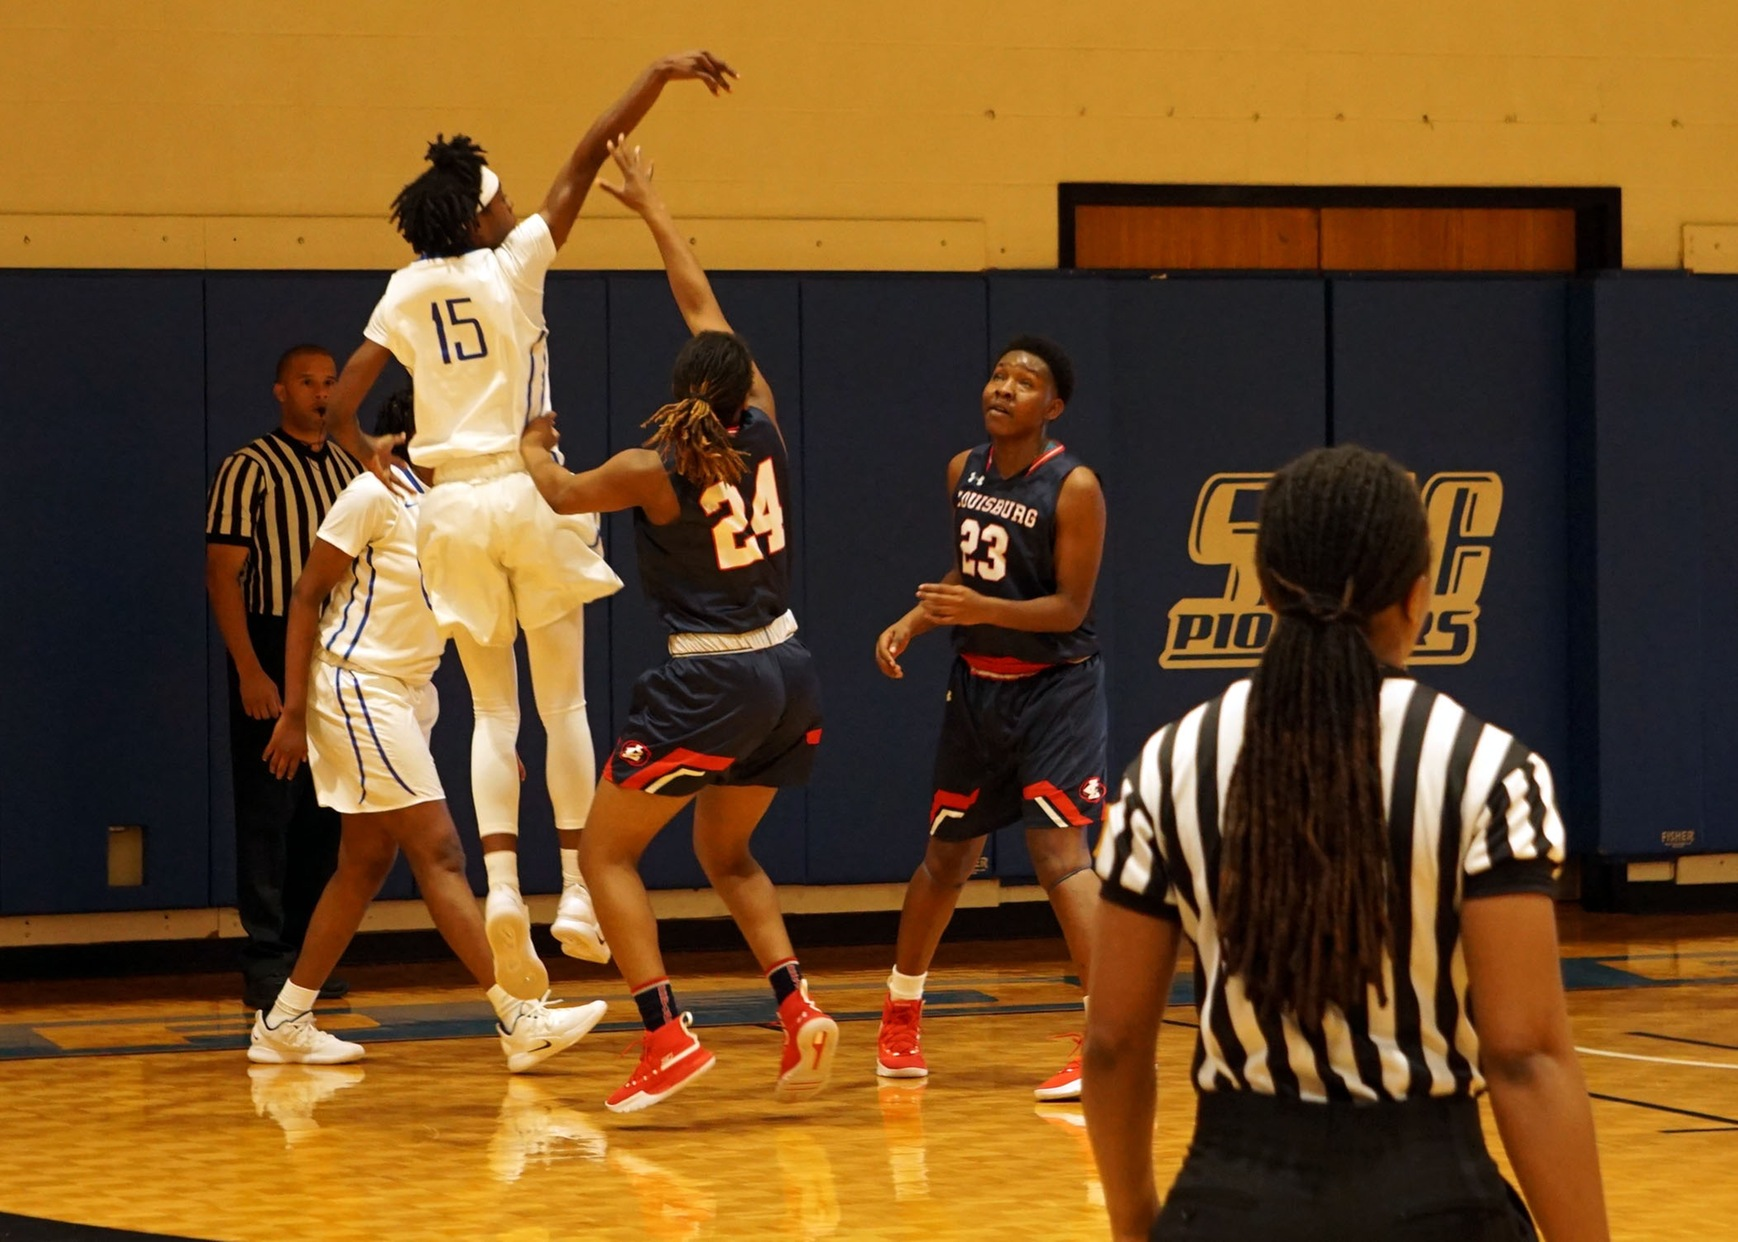 Lady Pioneers Fall to Louisburg 89-77